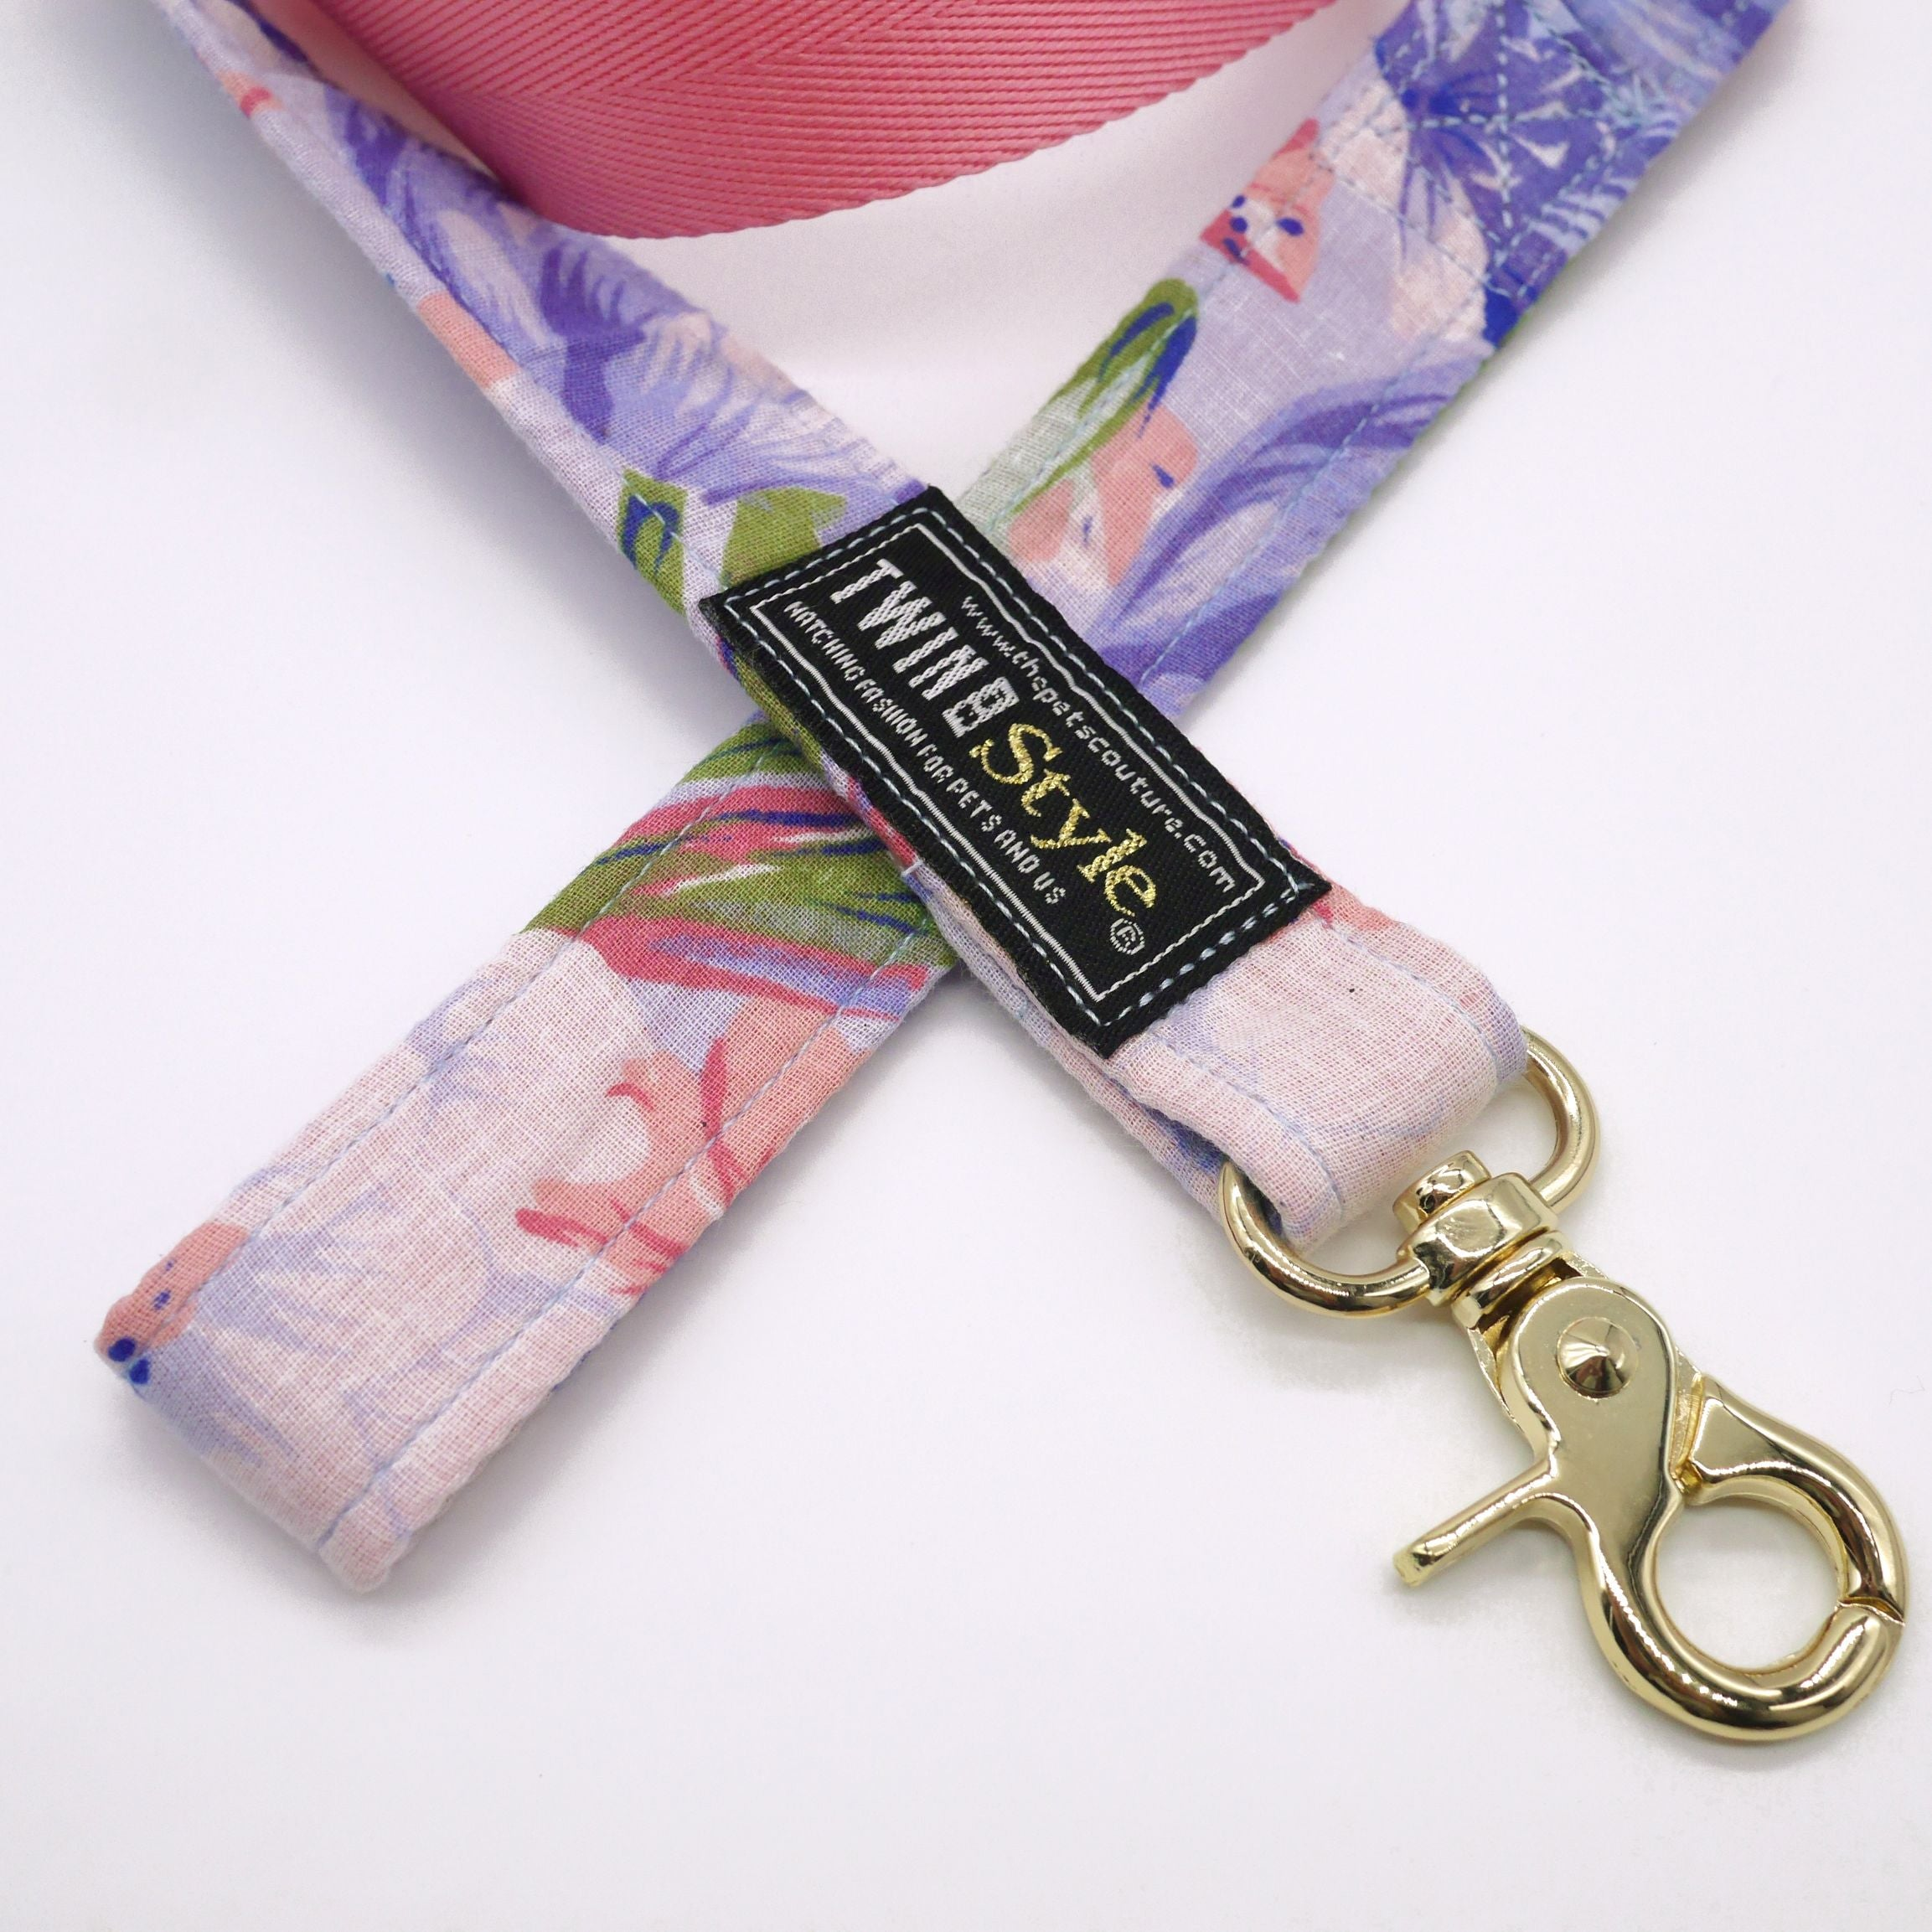 Tropical Fauna Pink Harness with Detachable Skirt + Leash Set - Twin In Style (For Her) - The Pet's Couture